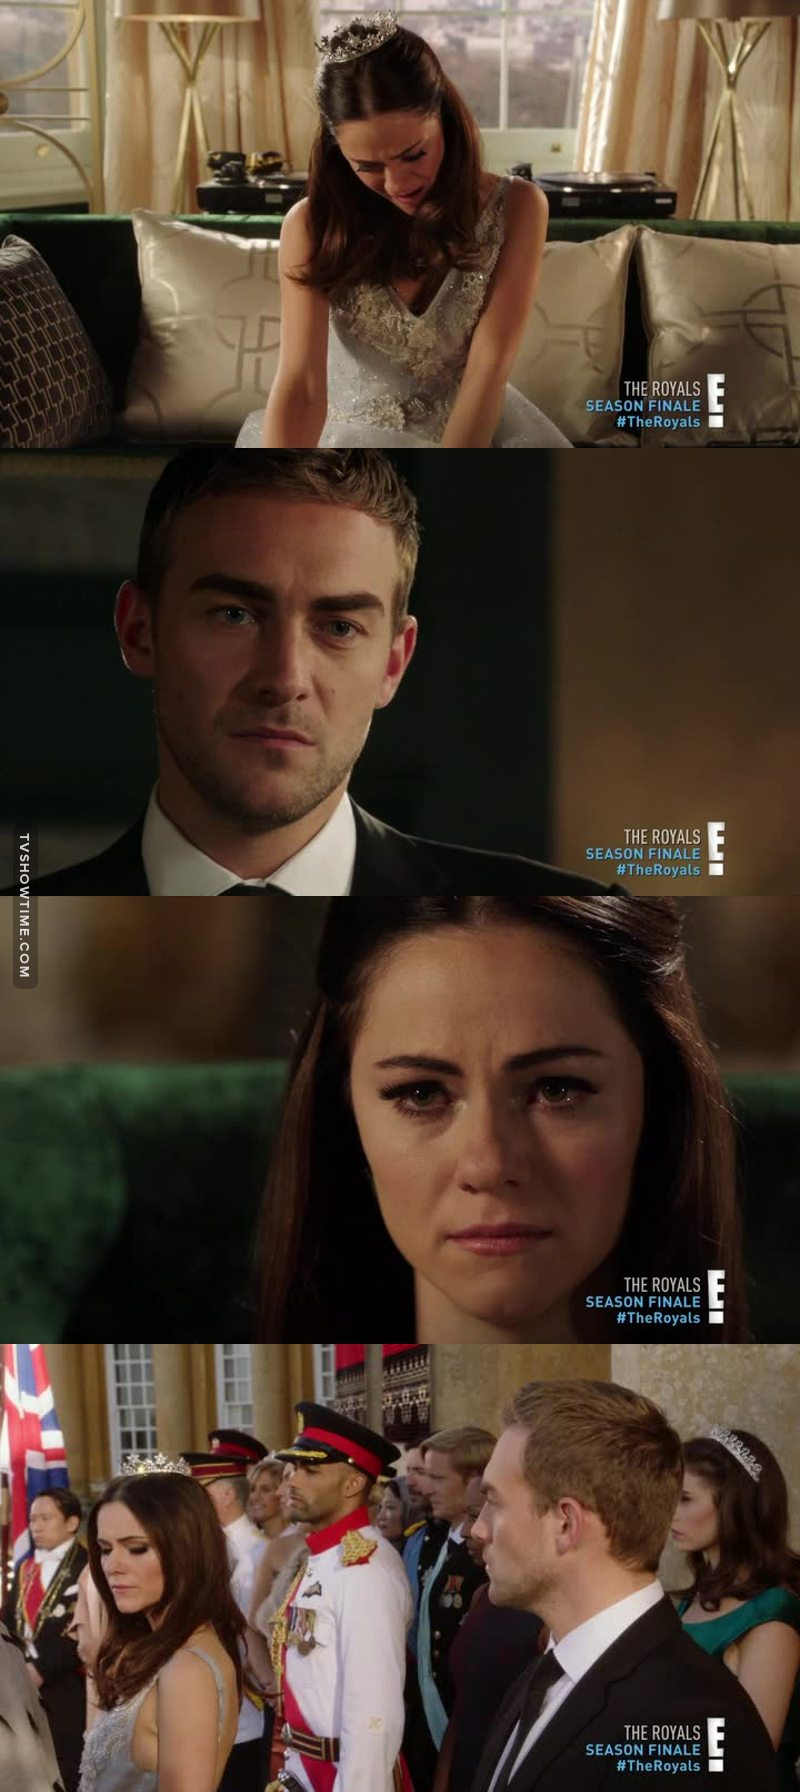 They can't just leave us like that until 2018..we need so much more of jaspenor.🙁🙁